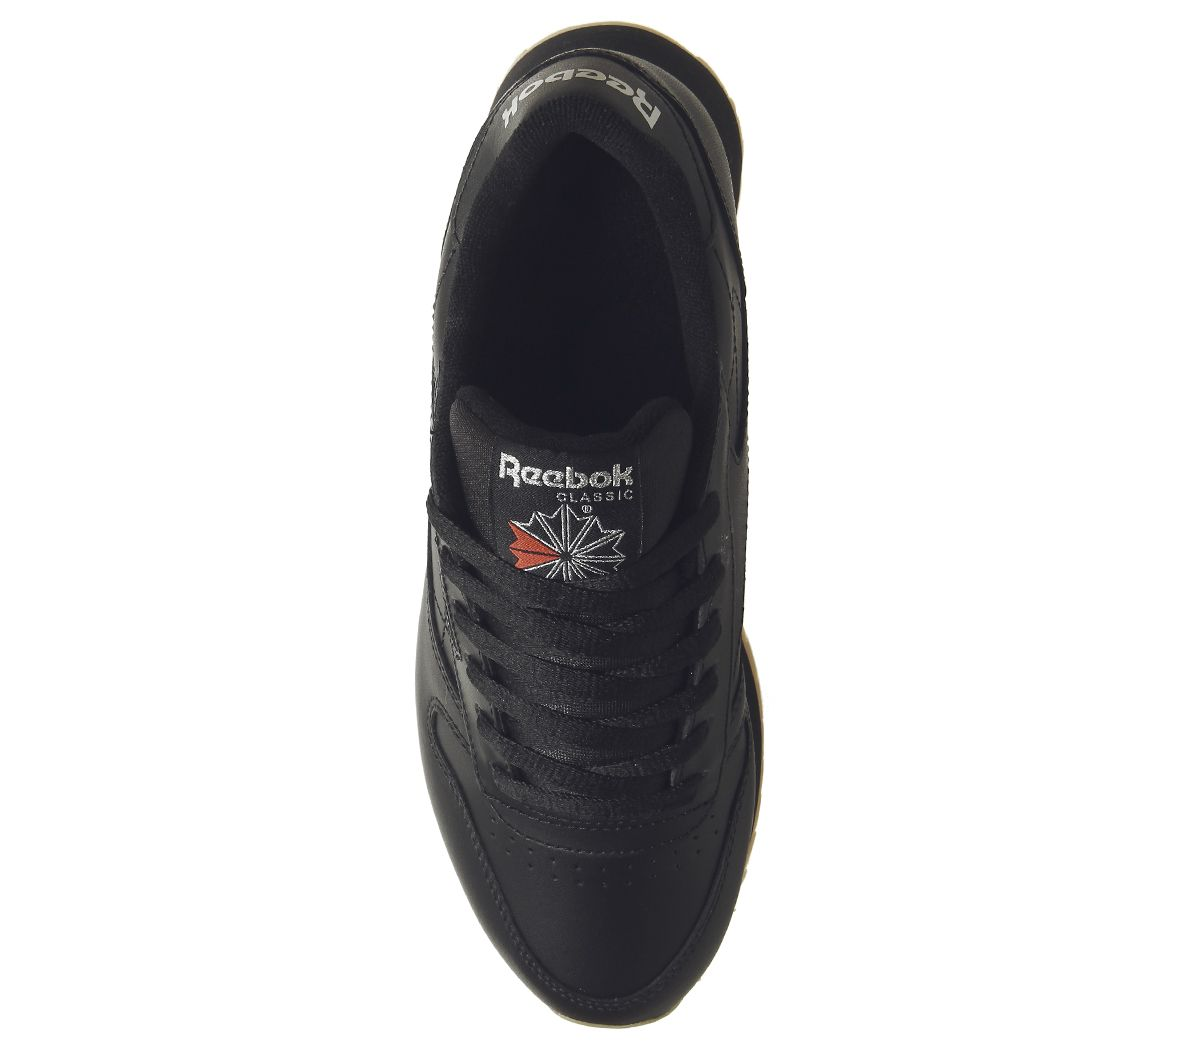 58bae1542534 Sentinel Womens Reebok Classic Leather Double Trainers Black Gum Silver  Metallic Trainers